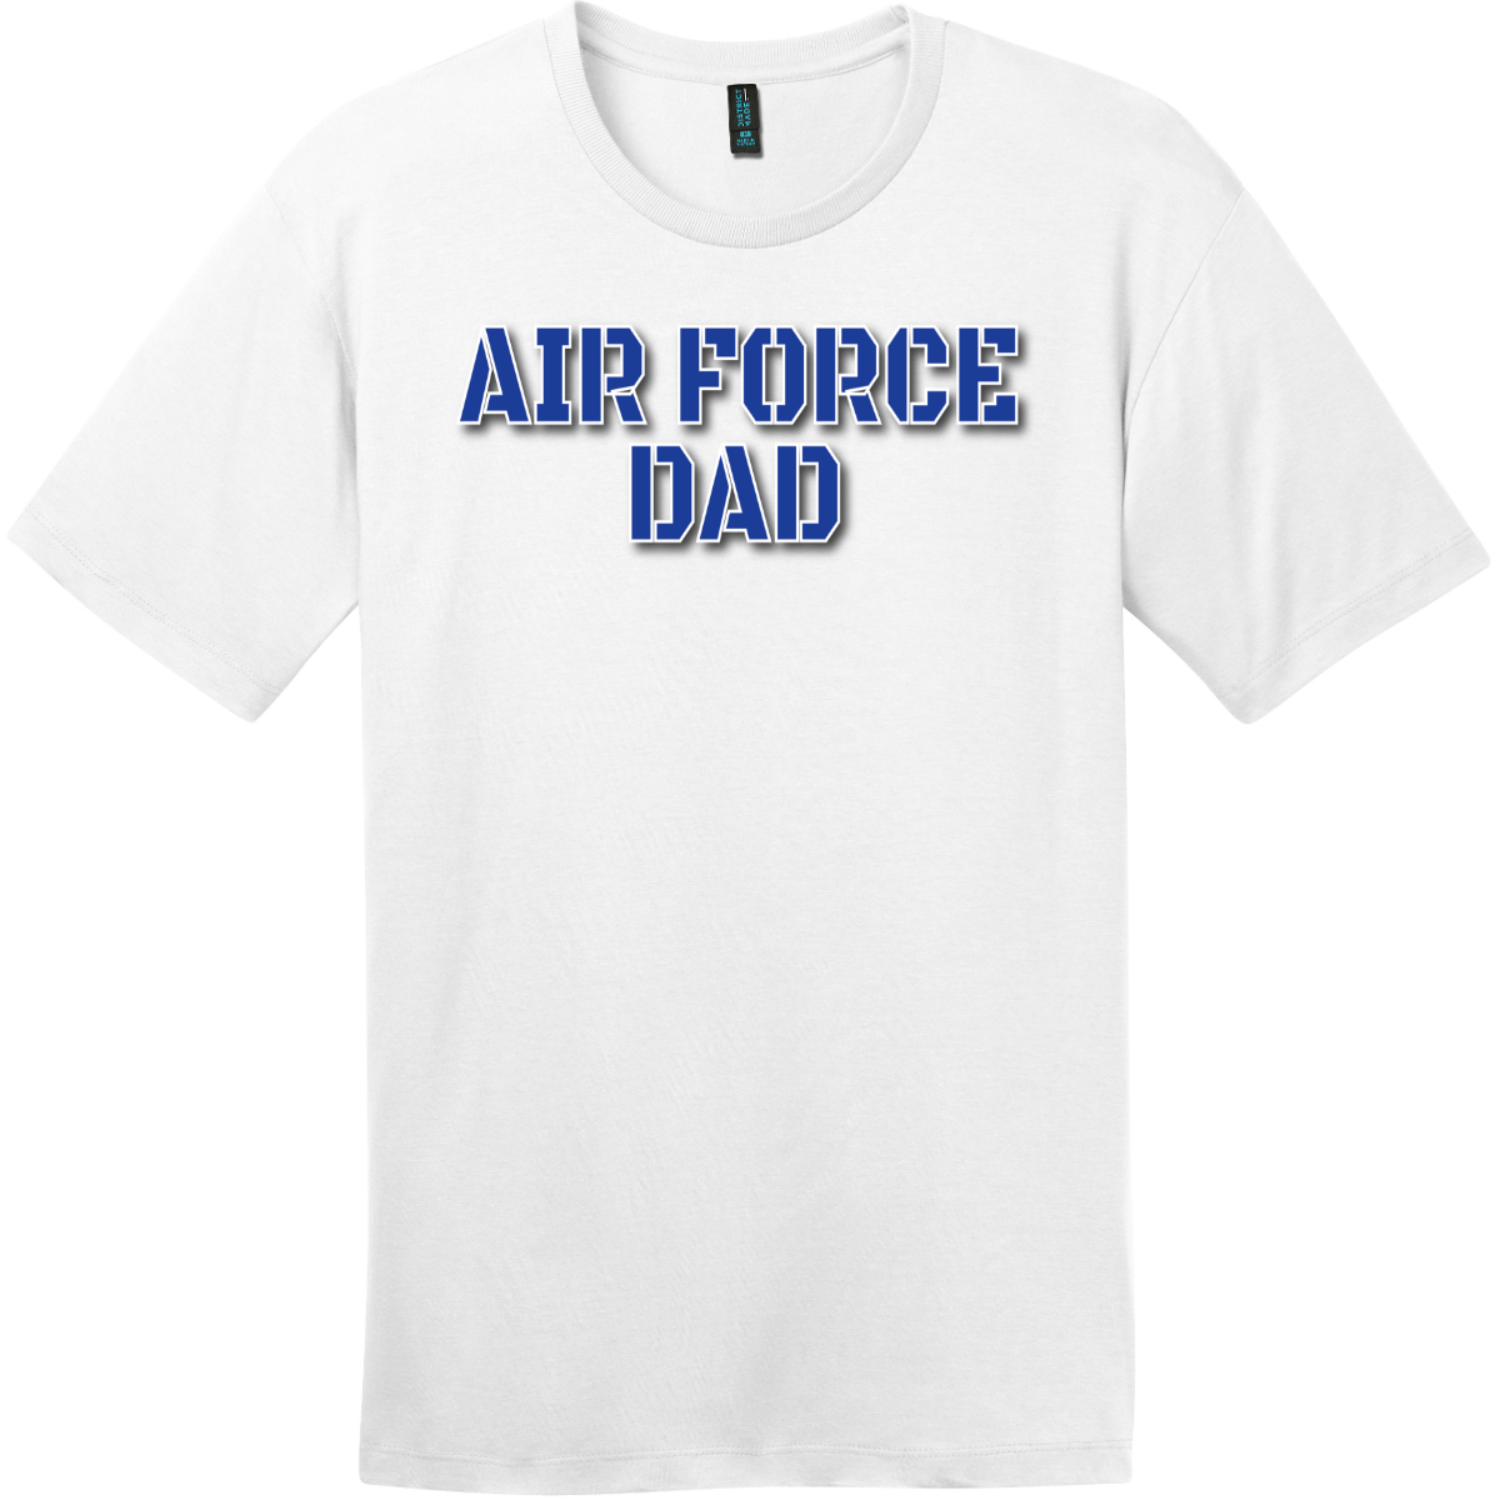 Air Force Dad T Shirt Bright White District Perfect Weight Tee DT104